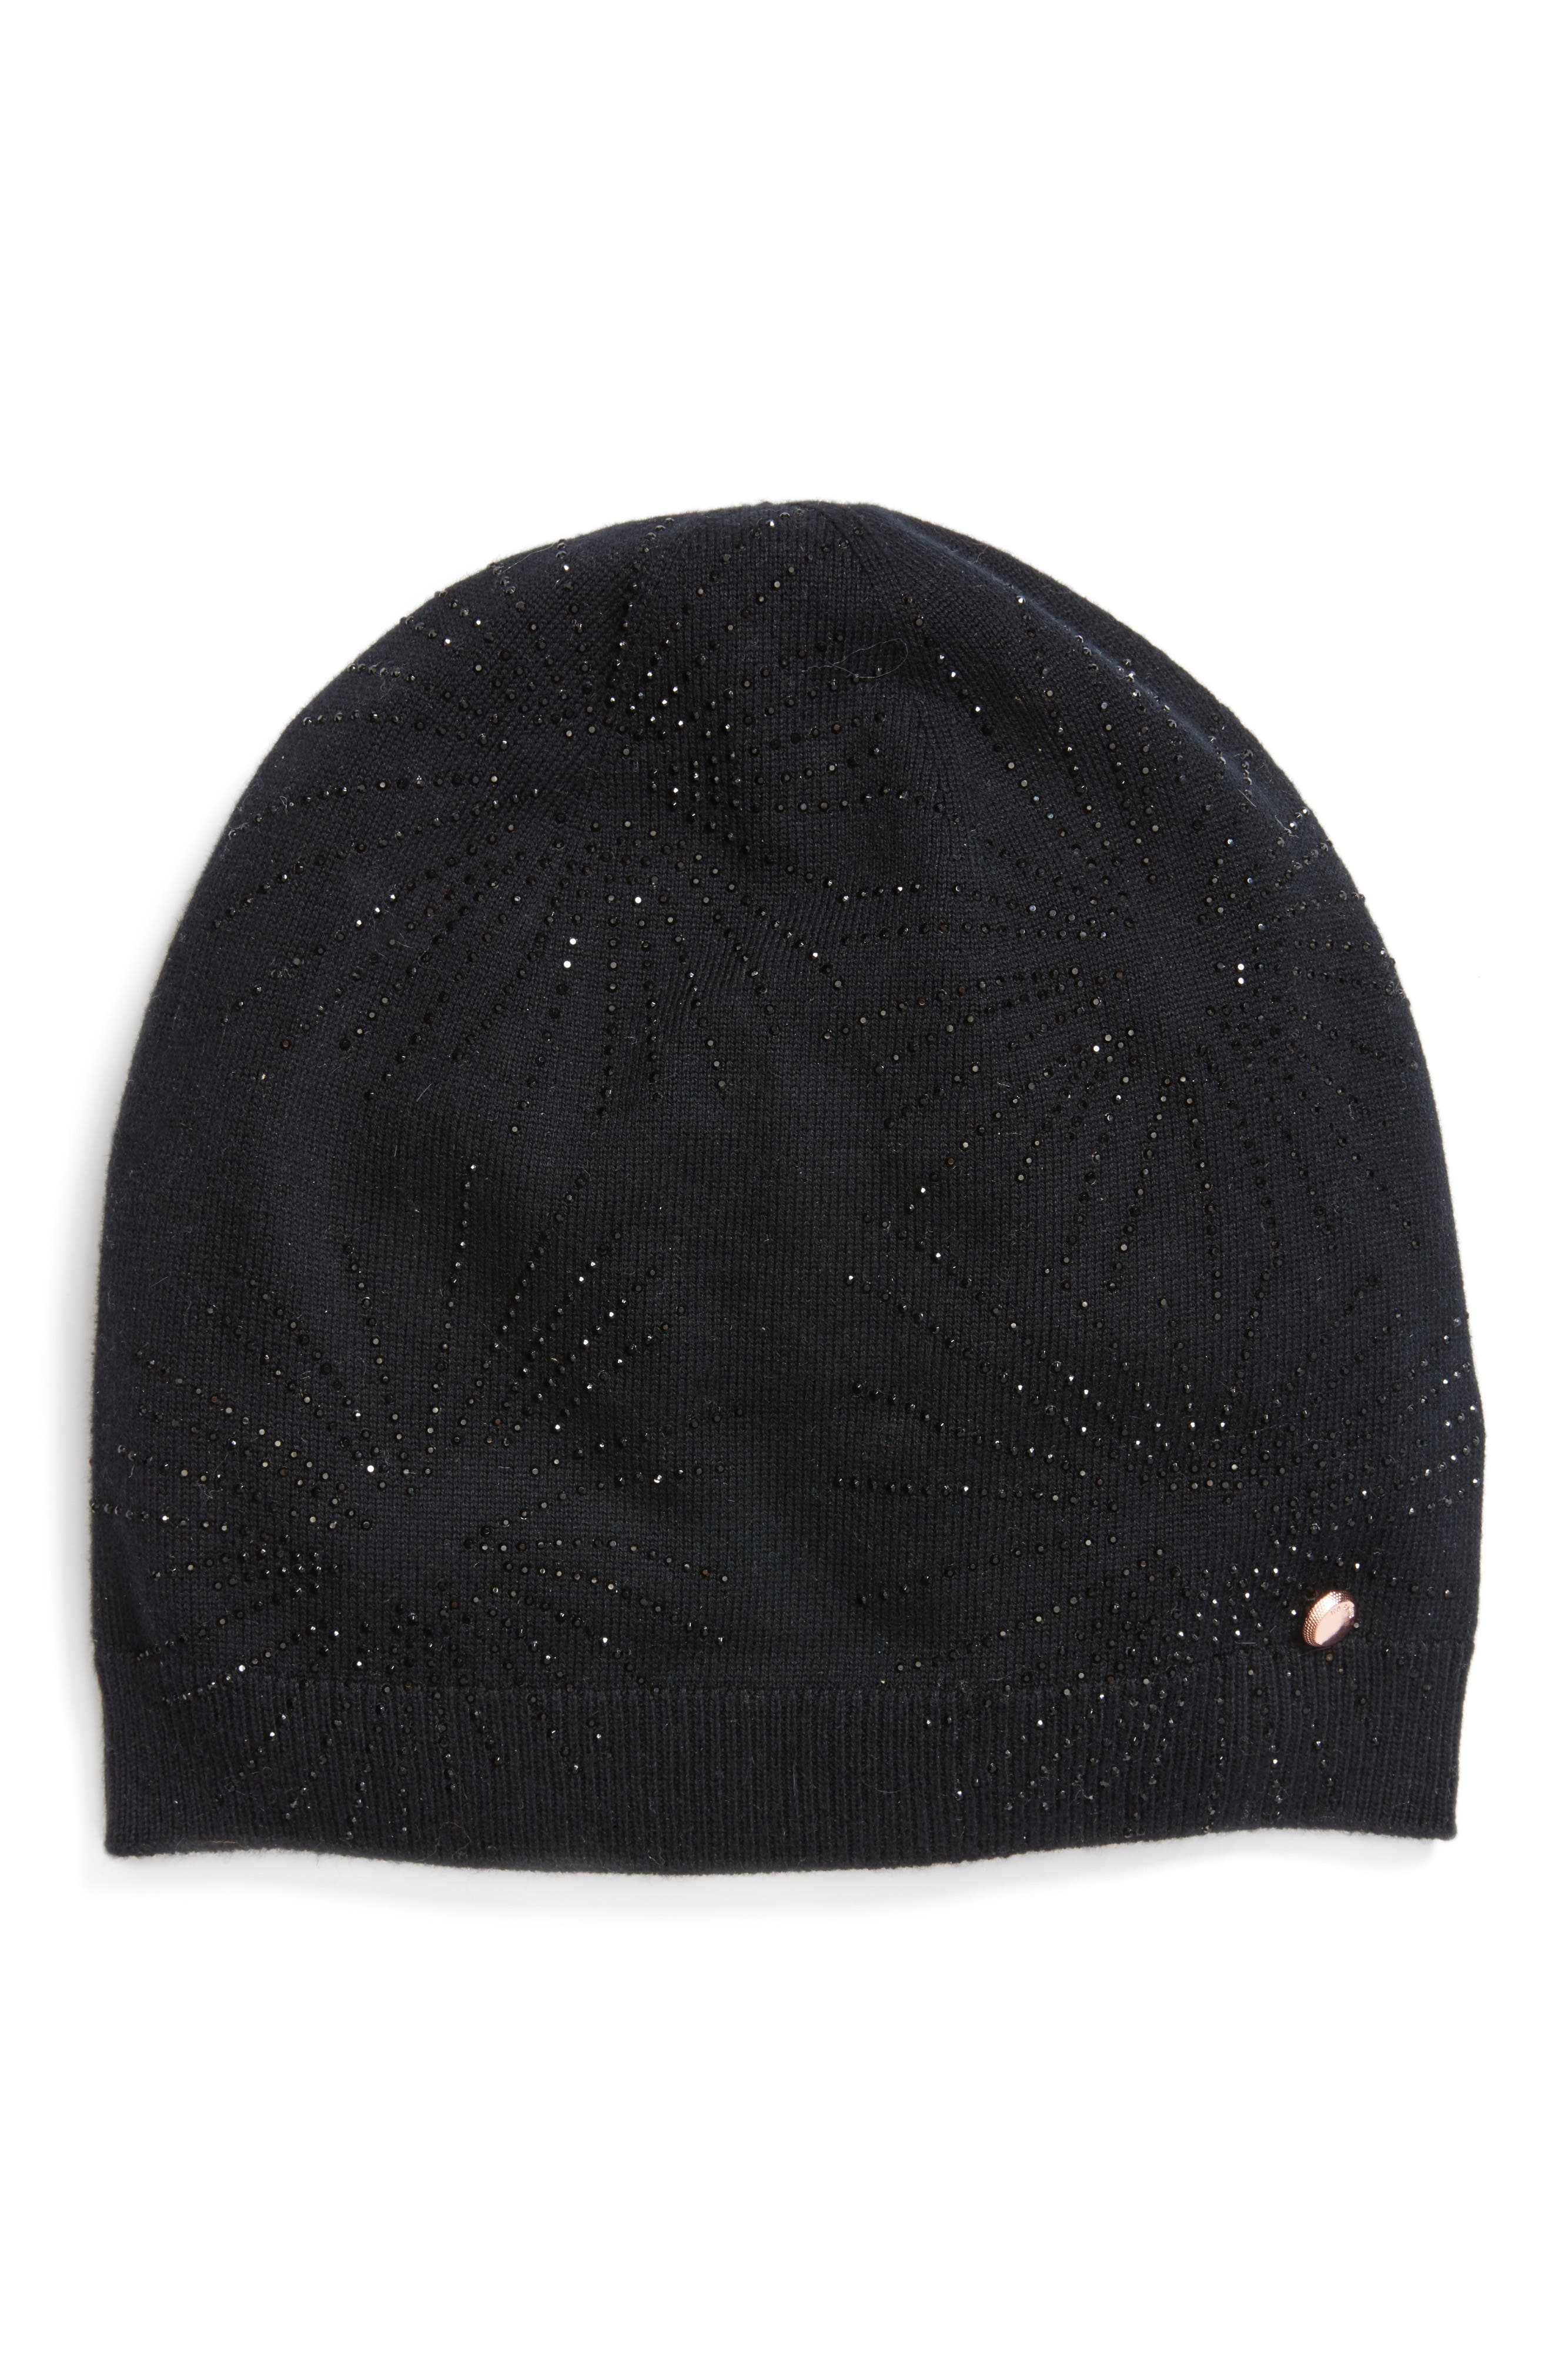 Stardust Embellished Knit Beanie,                             Main thumbnail 1, color,                             001